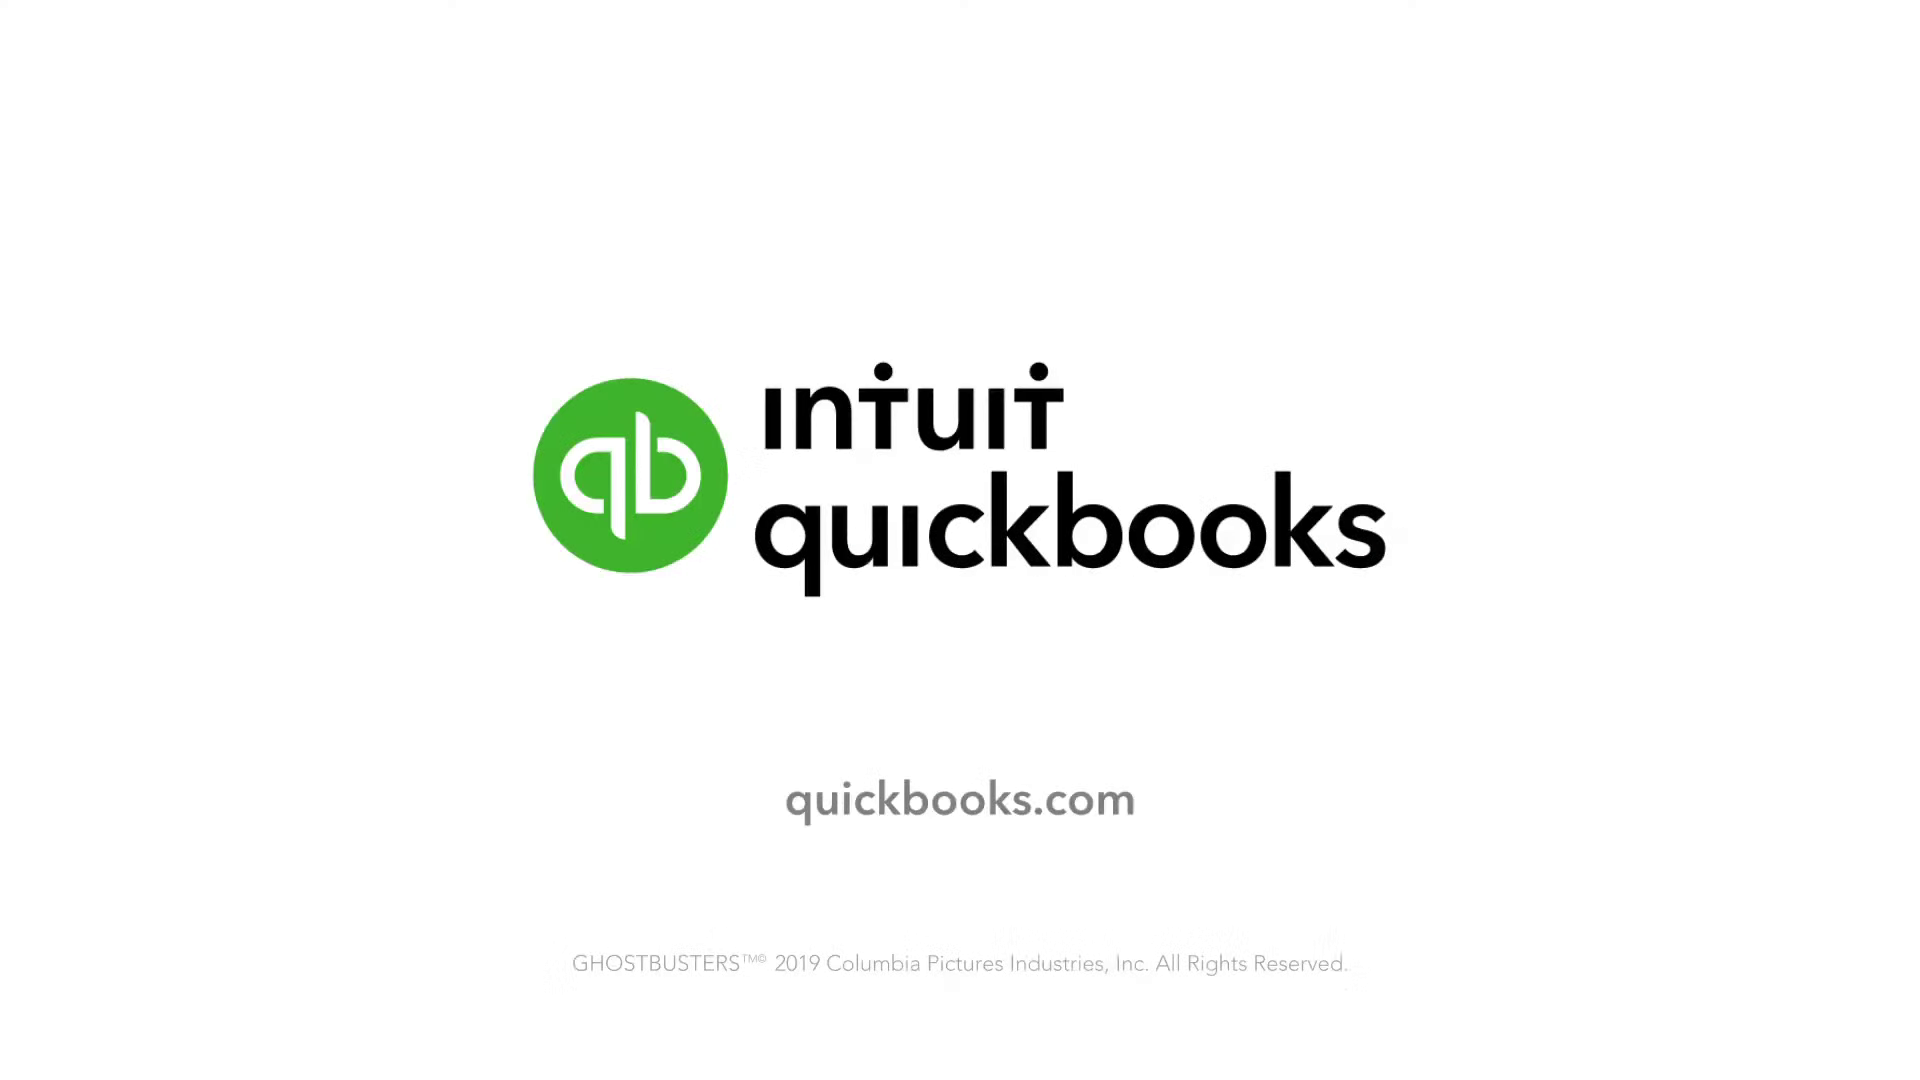 QuickBooks advertising related to Ghostbusters